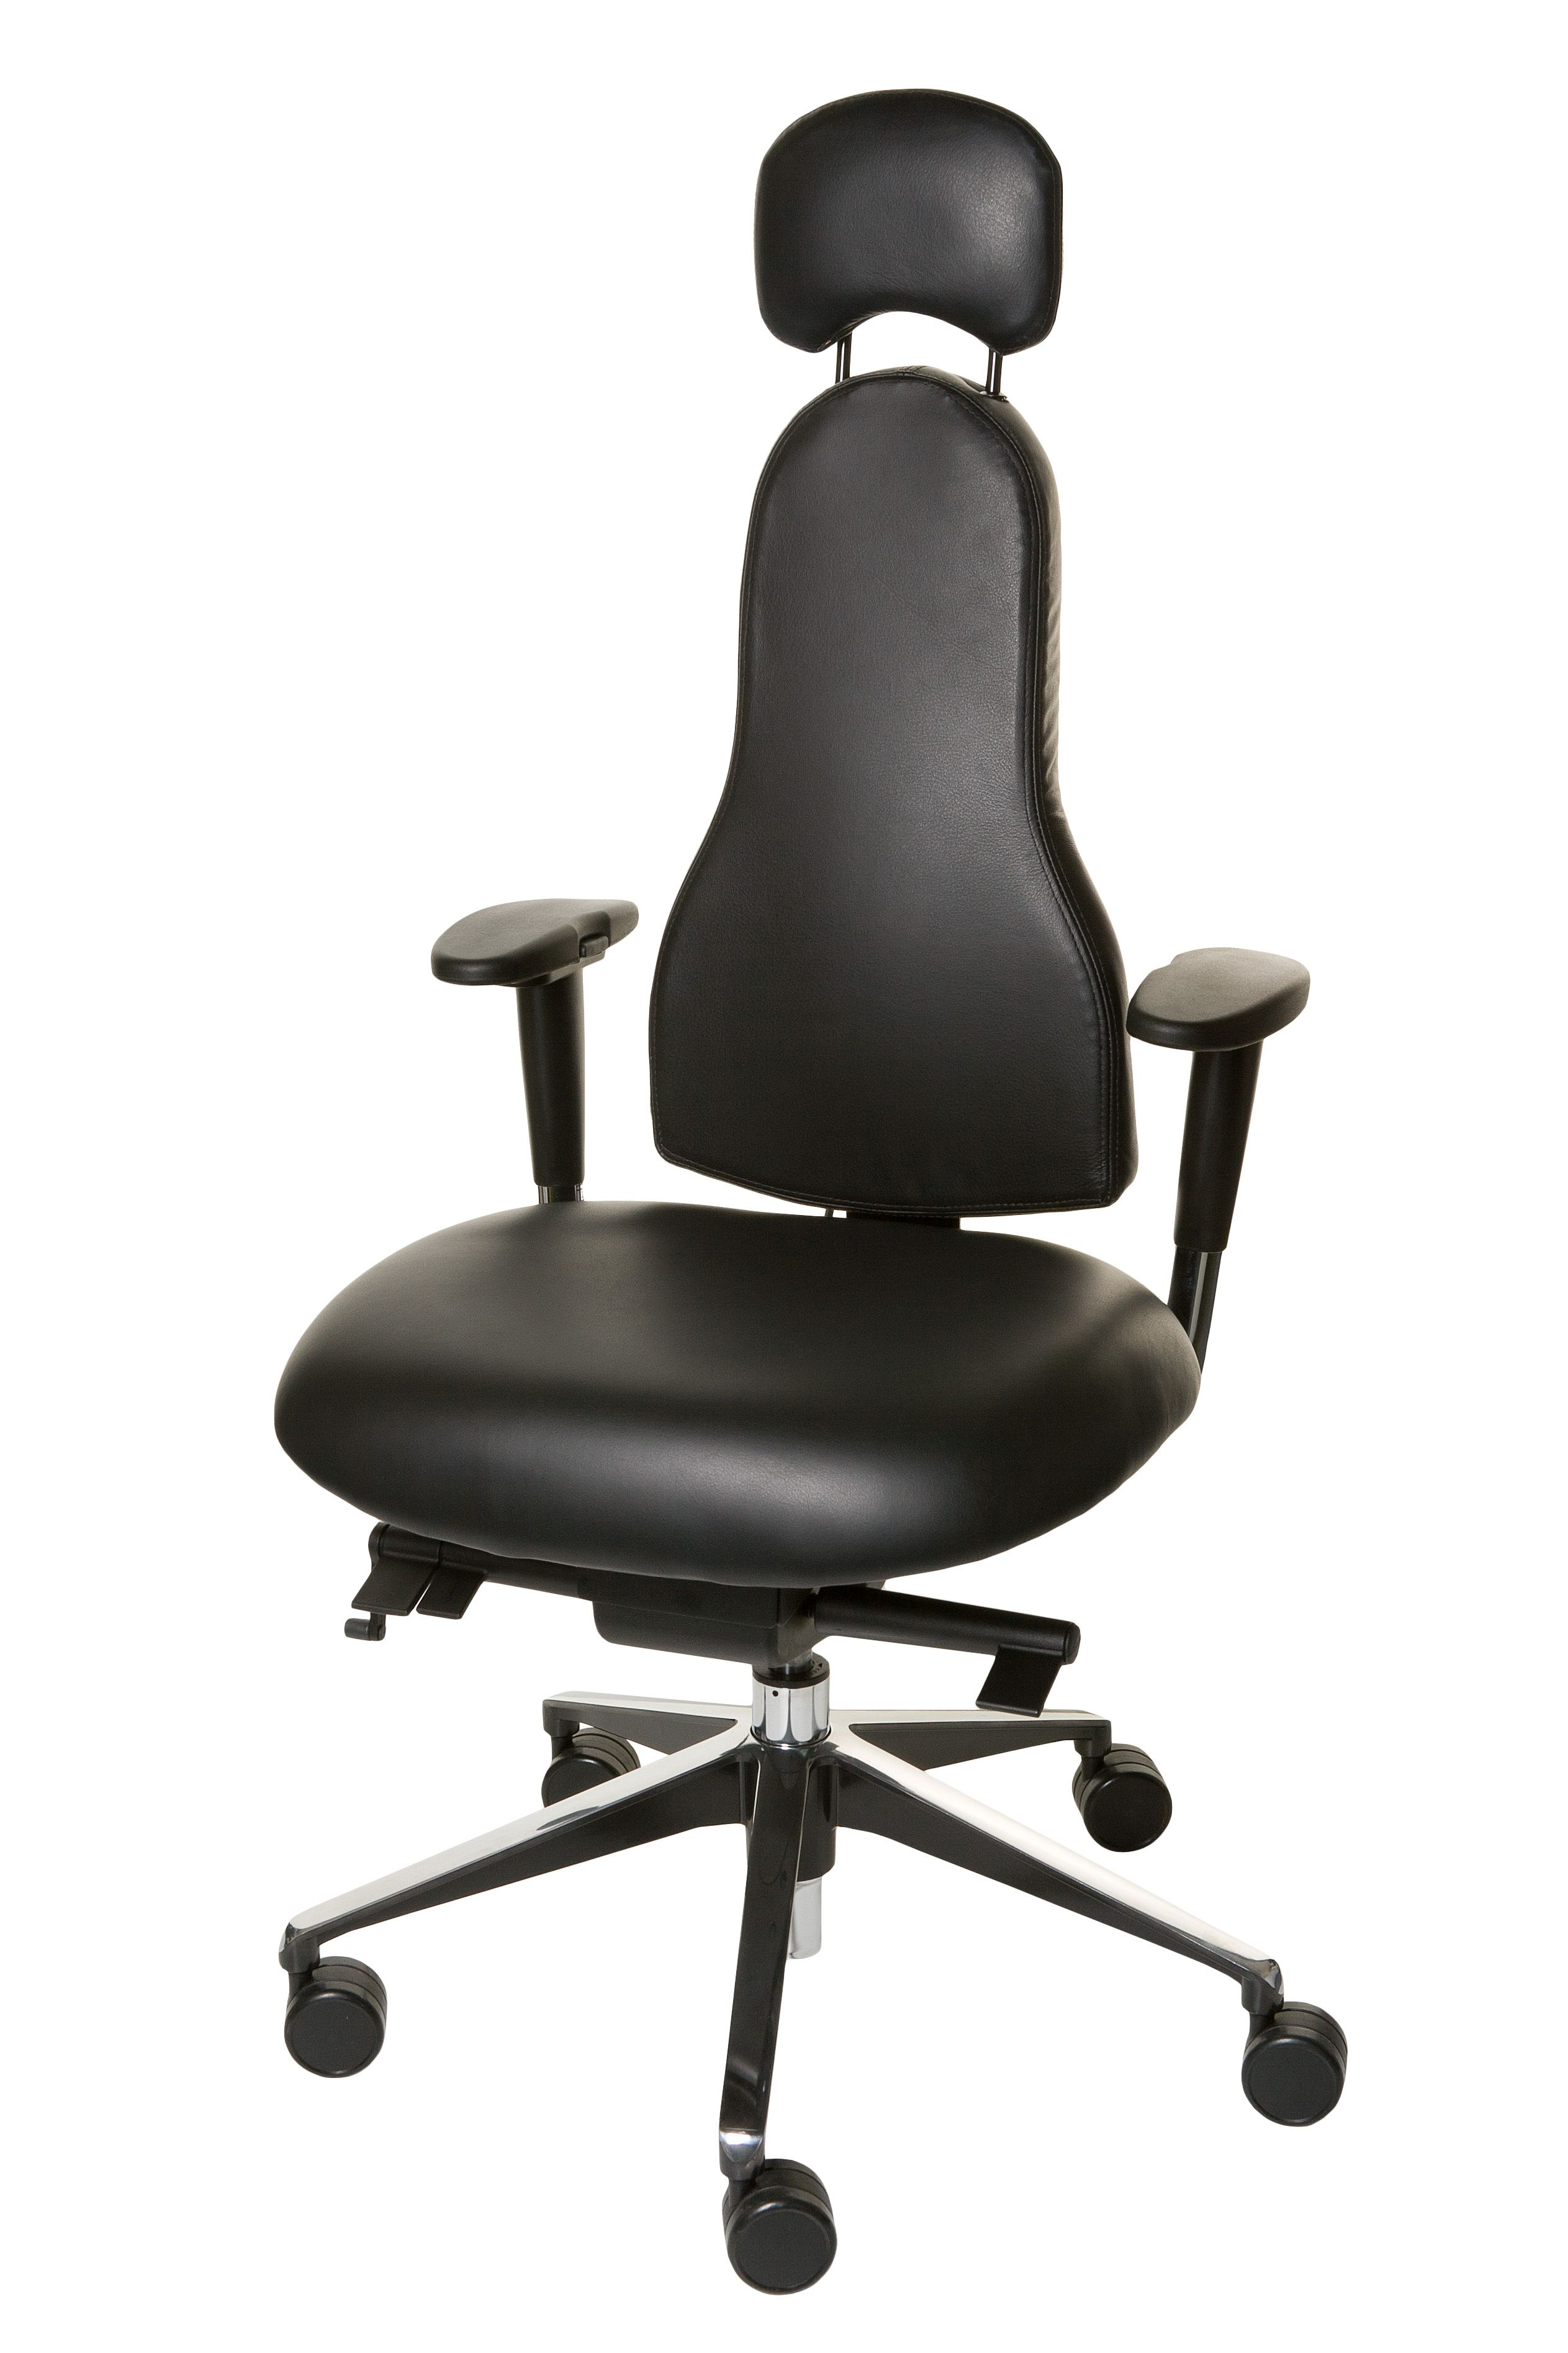 Pin on Back Pain Tips Ergonomic Office Chairs